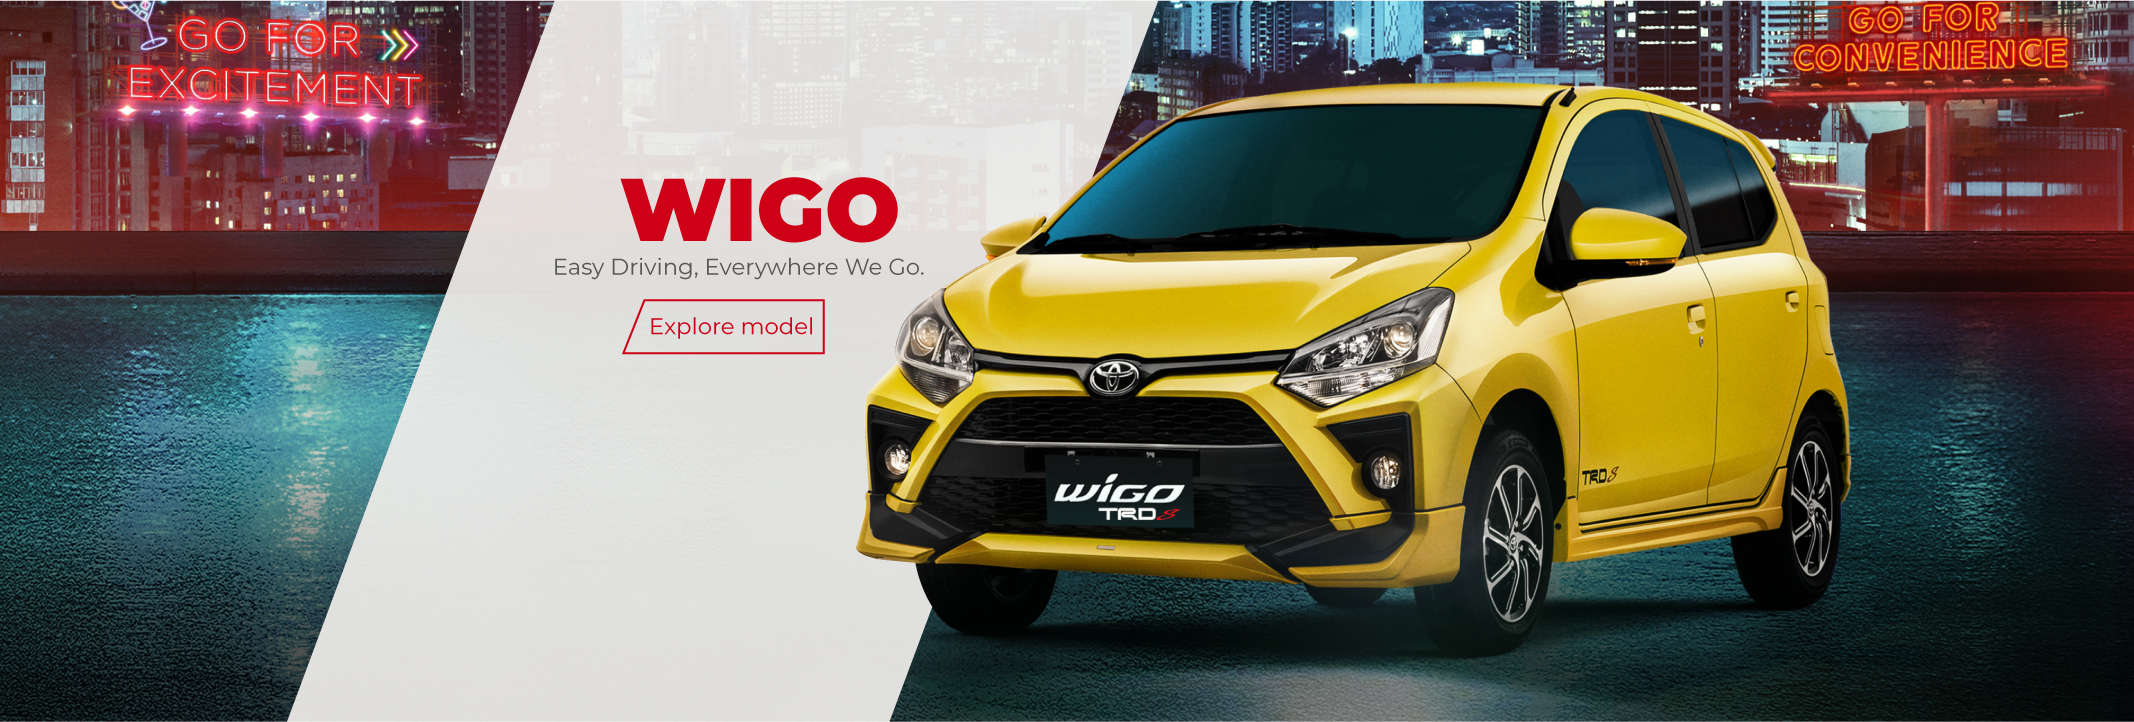 Wigo Tablet Banner